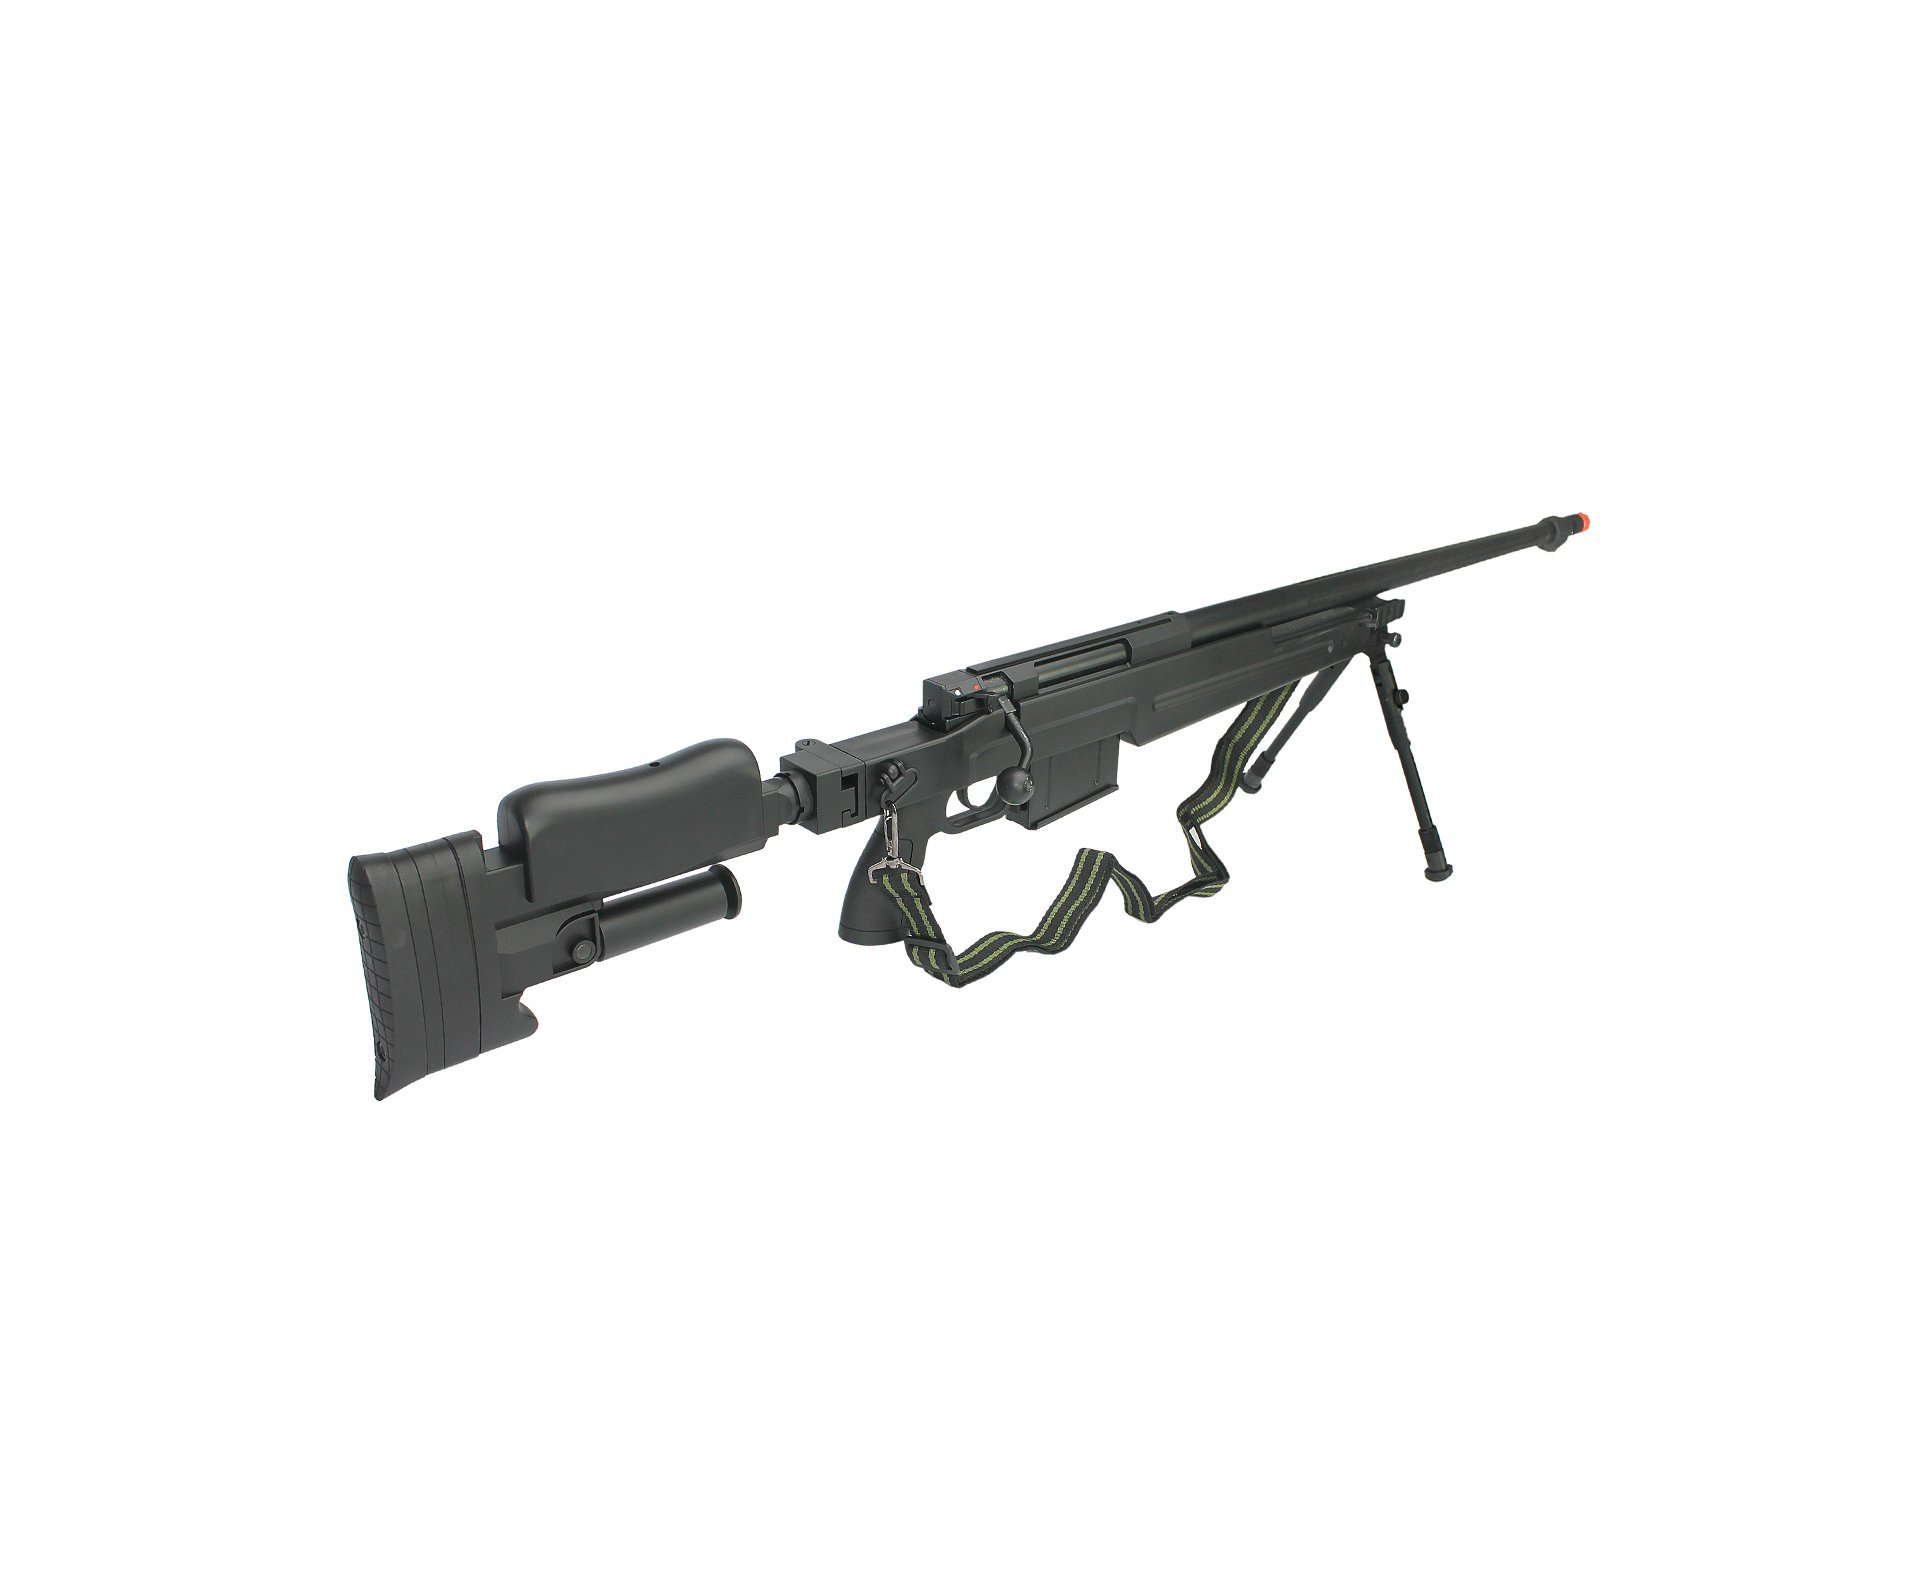 Rifle De Airsoft Sniper Gas Gbb G86b Com Bipé Cal 6.0mm - Well